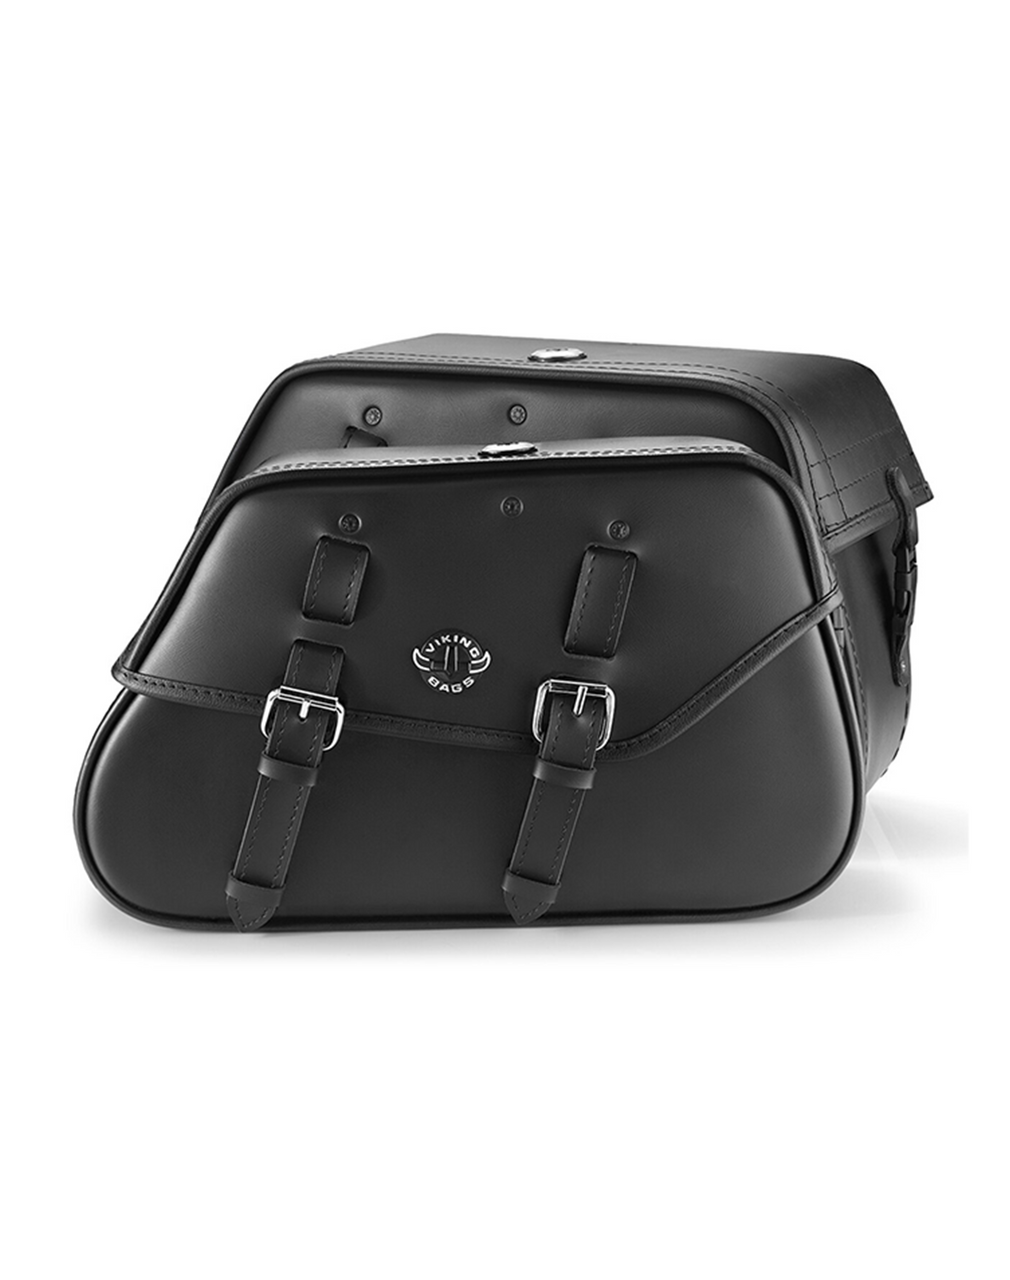 VikingBags Loki Medium Double Strap Leather Motorcycle Saddlebags For Harley Softail Breakout 114 FXBRS Both Bags View